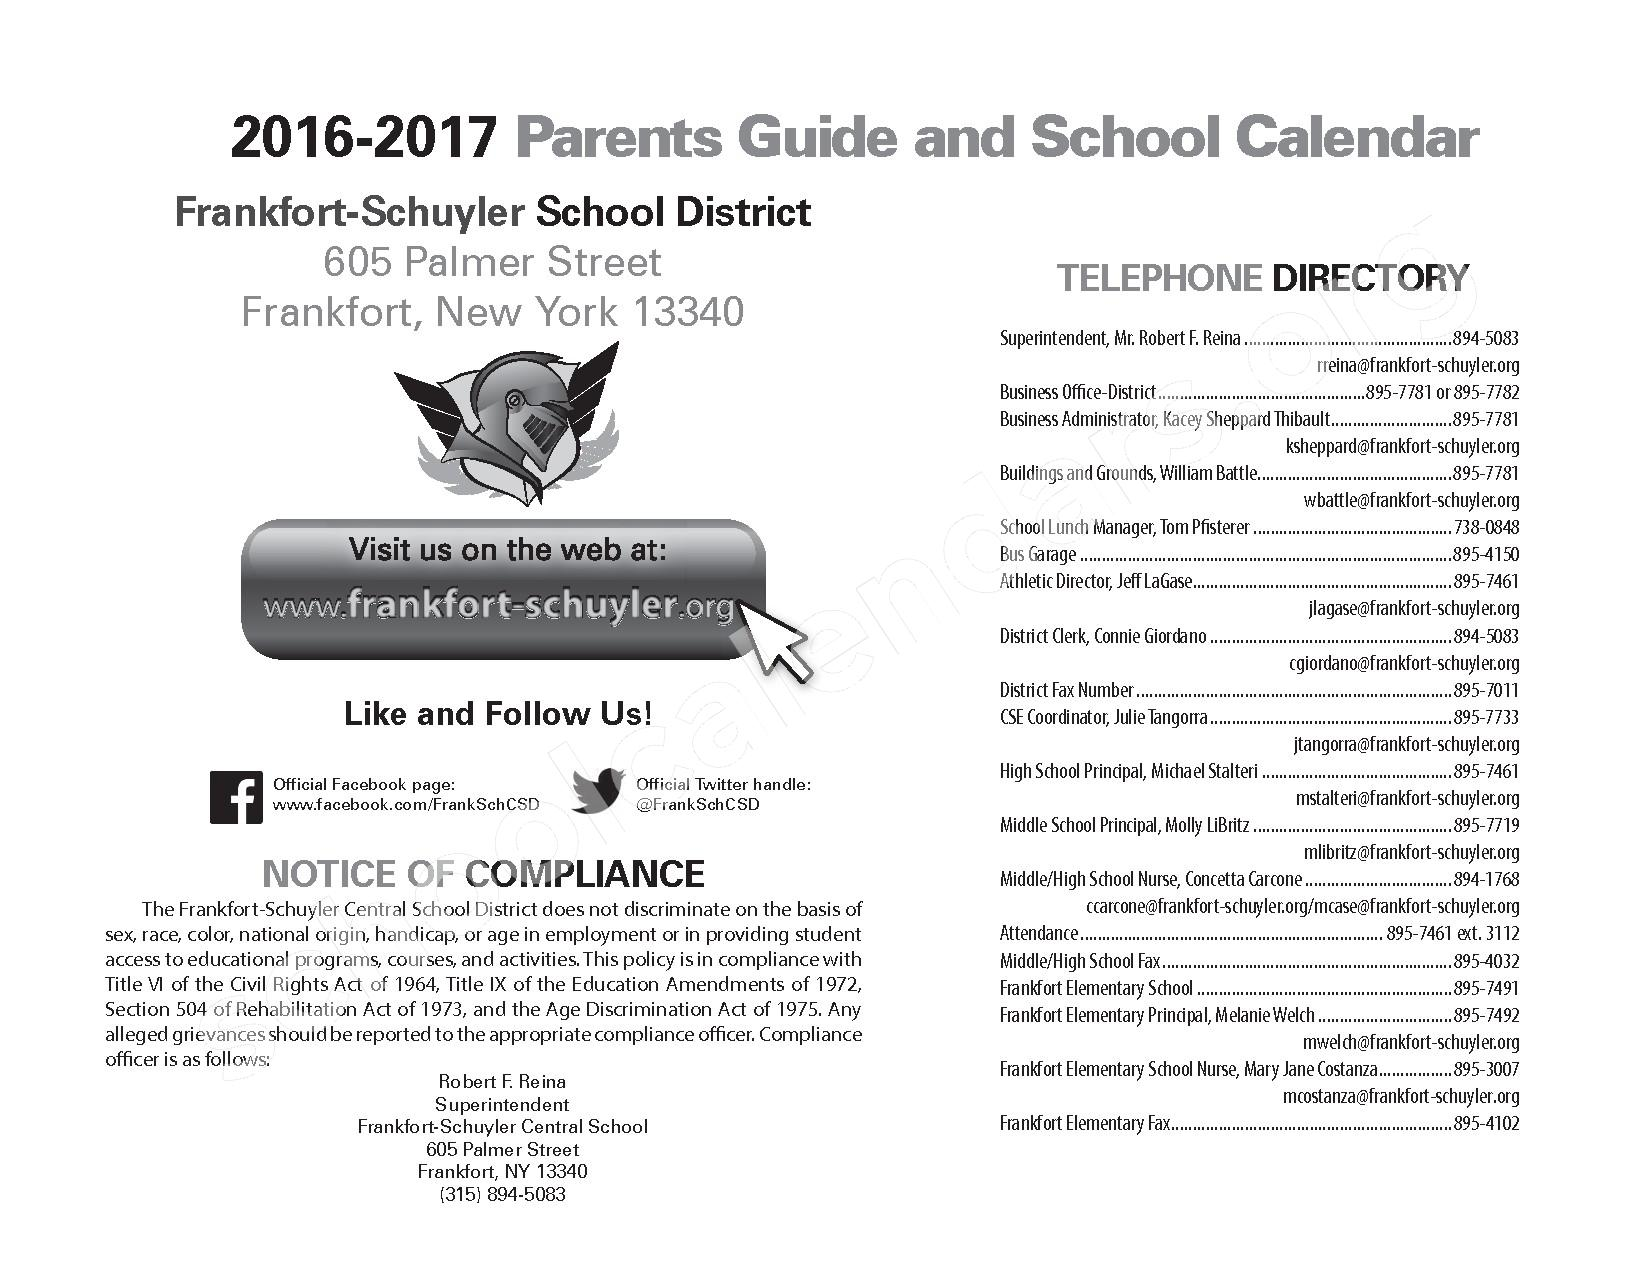 2016 - 2017 District Calendar – West Frankfort Elementary School – page 2